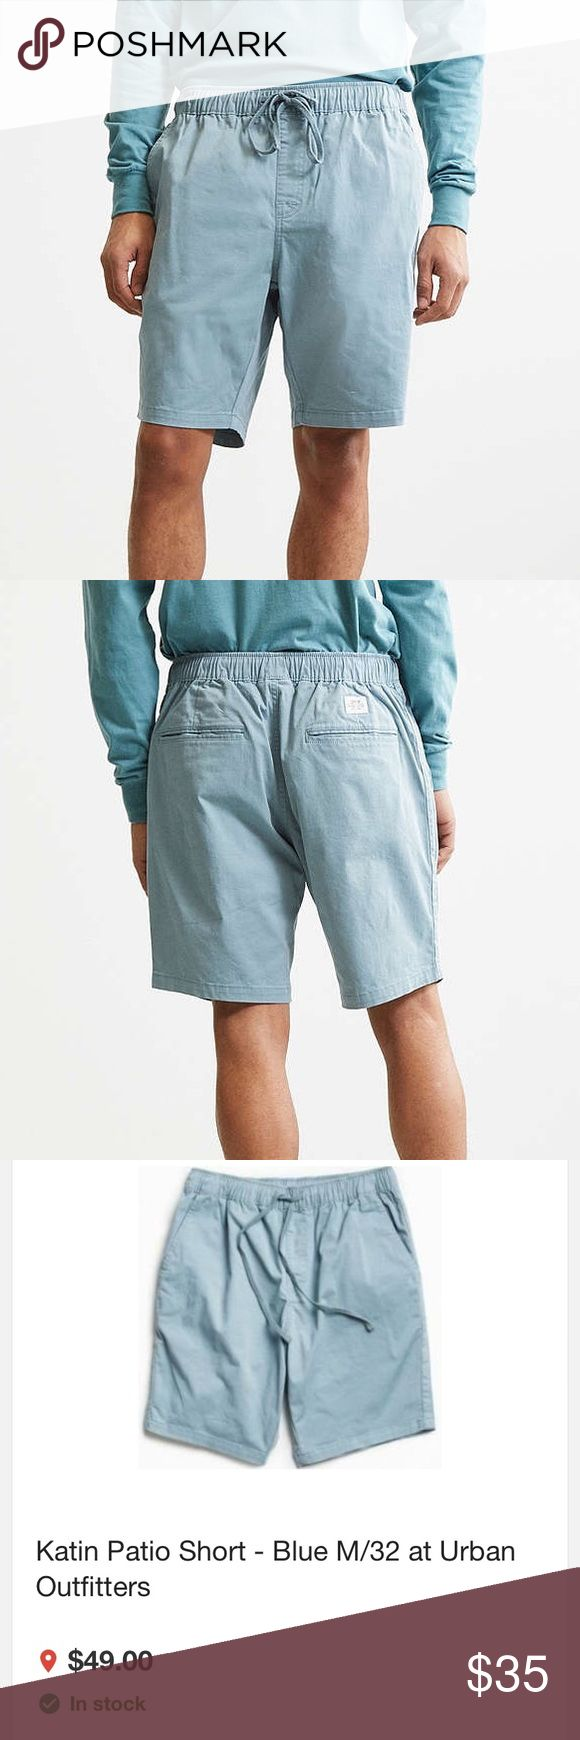 Urban Outfitters men's Katin patio shorts size 32 These urban outfitters shorts are new, with tags, and still sealed in the bag as pictured. Urban Outfitters Shorts Cargo